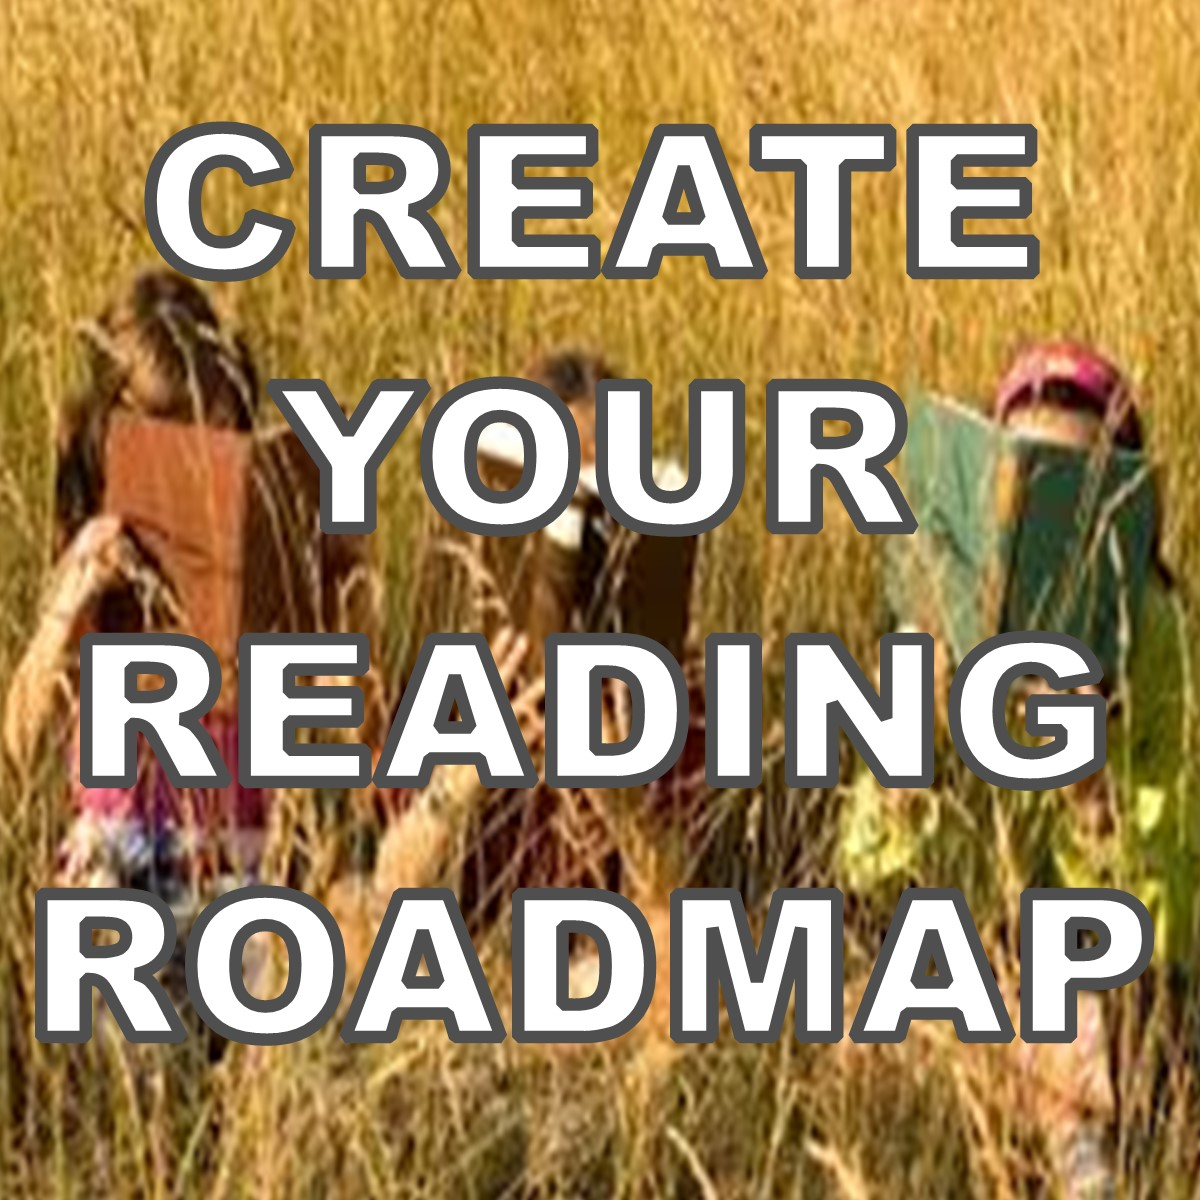 reading-roadmap-button2.jpg